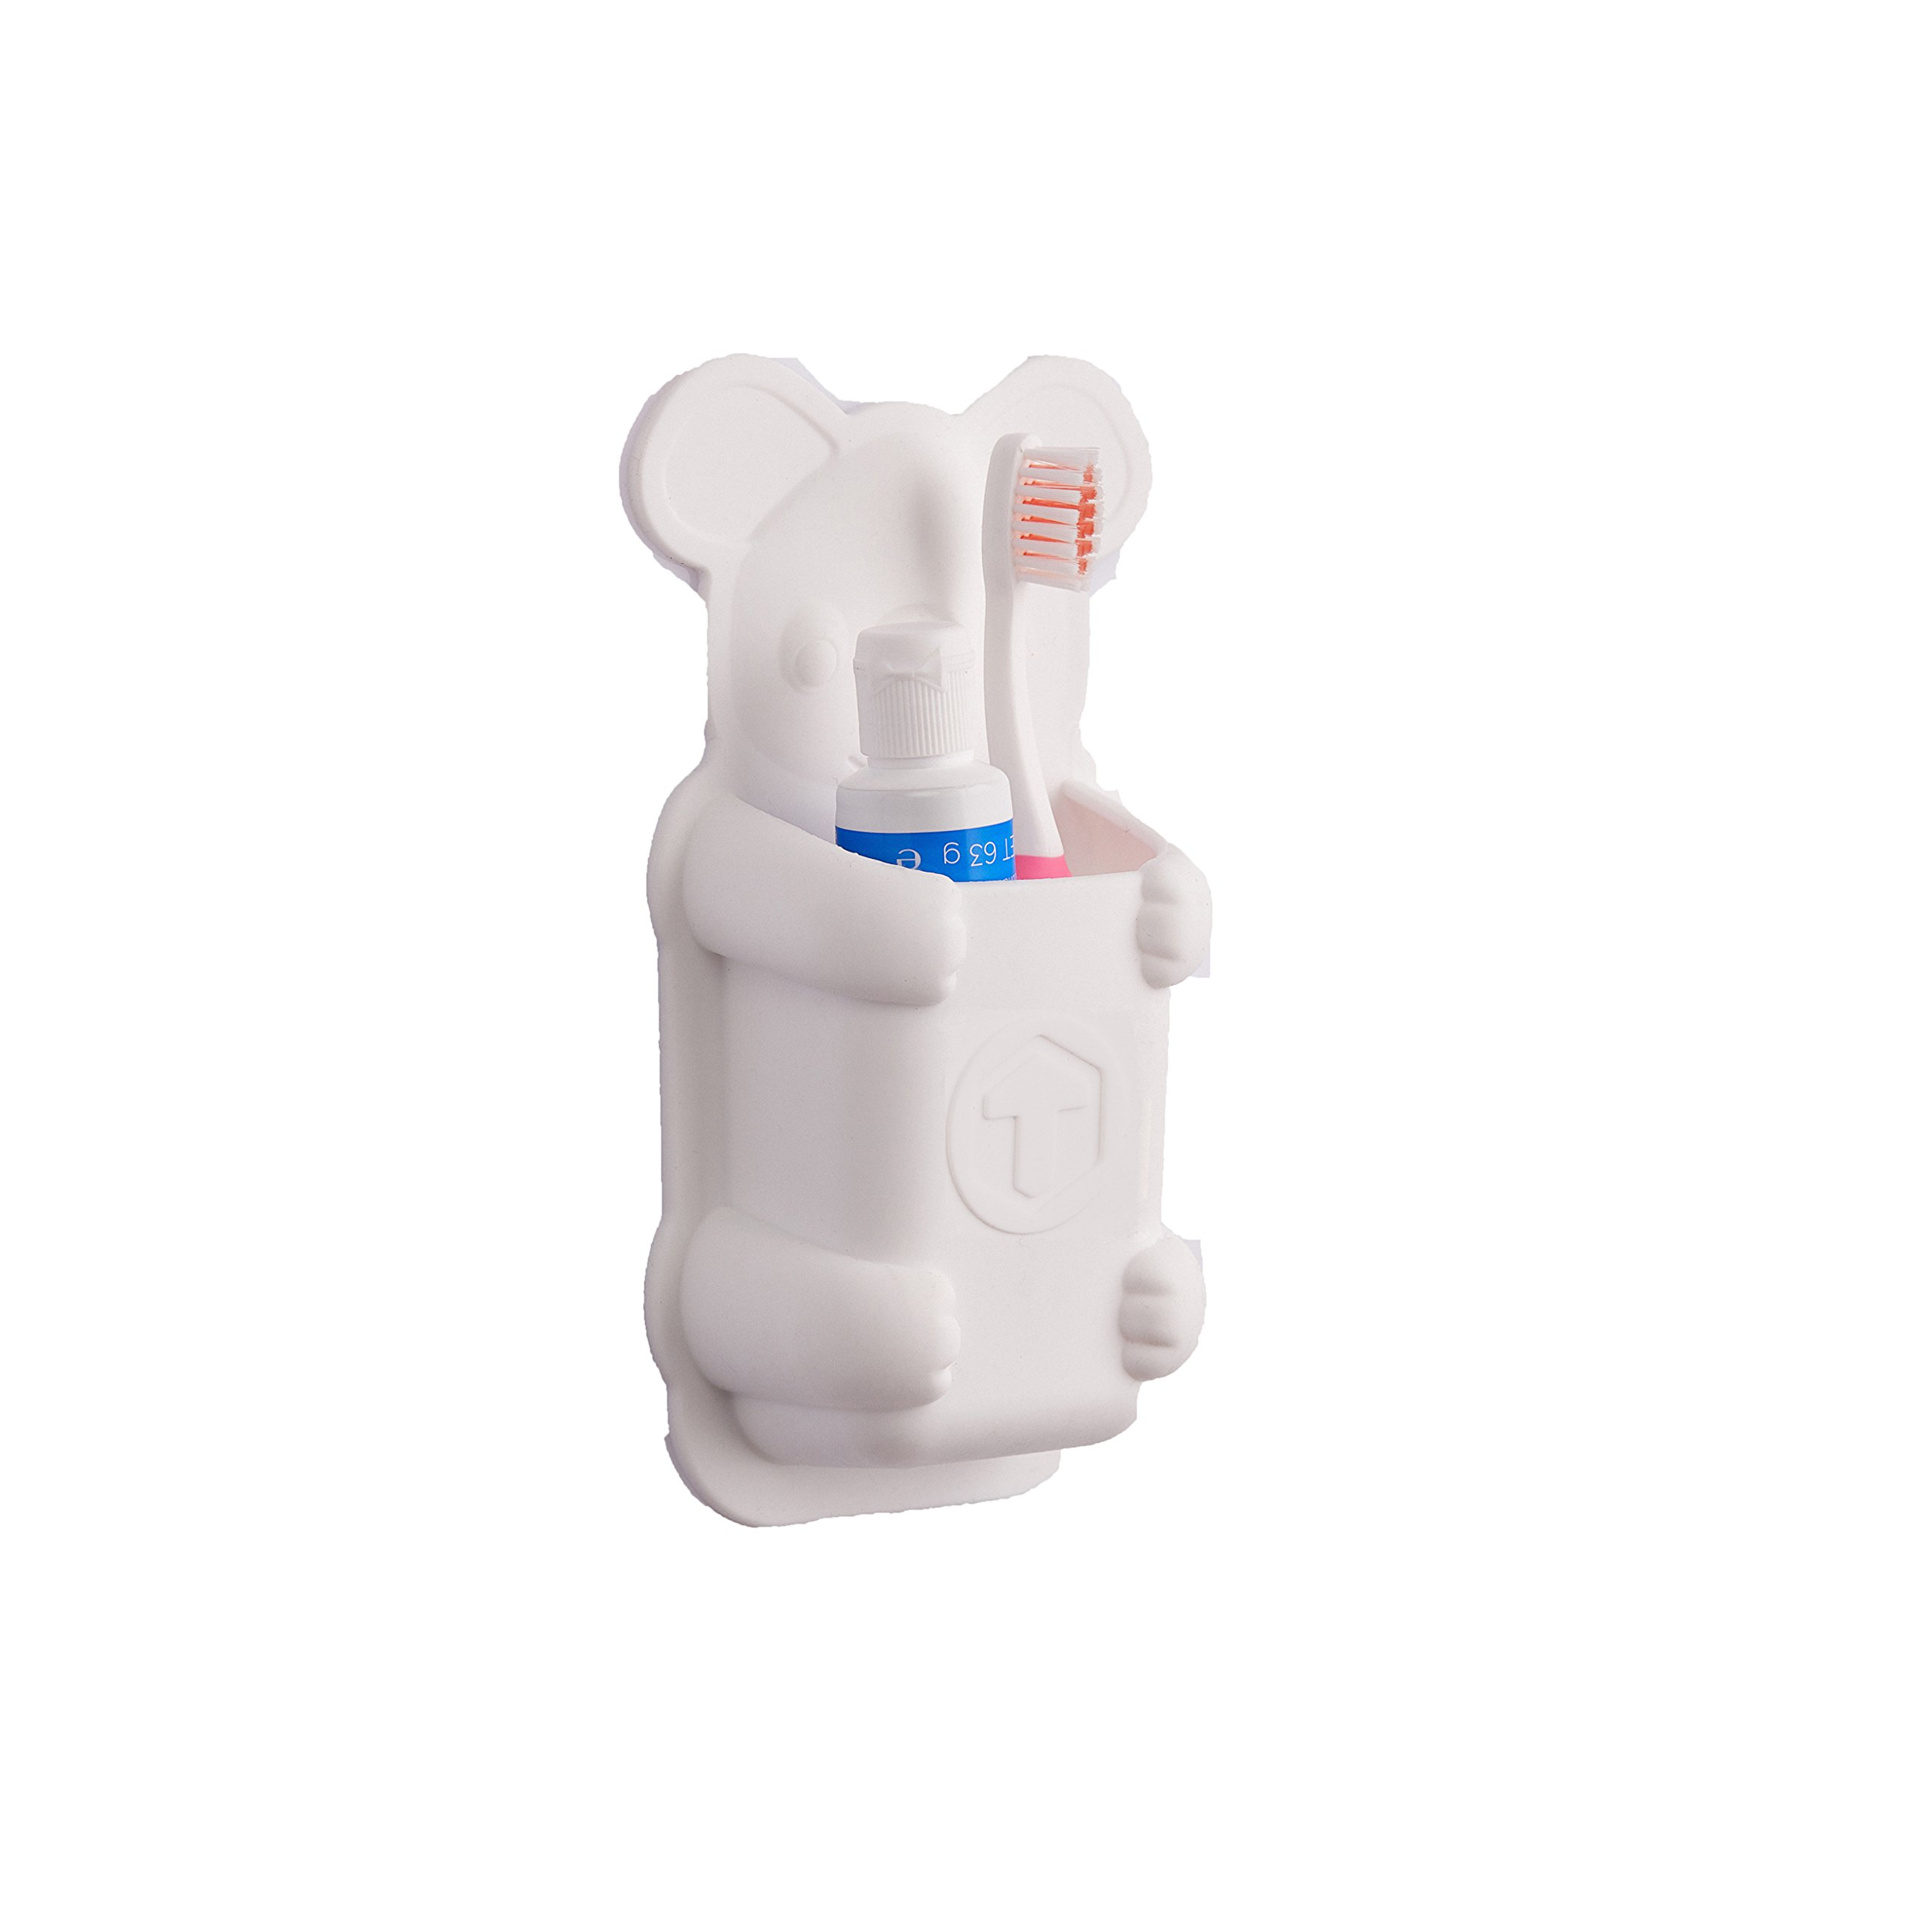 Kids Toothbrush Holder - koala animal shaped silicone toothbrush holder, waterproof, no suction cups, clings to shiny surfaces (white)